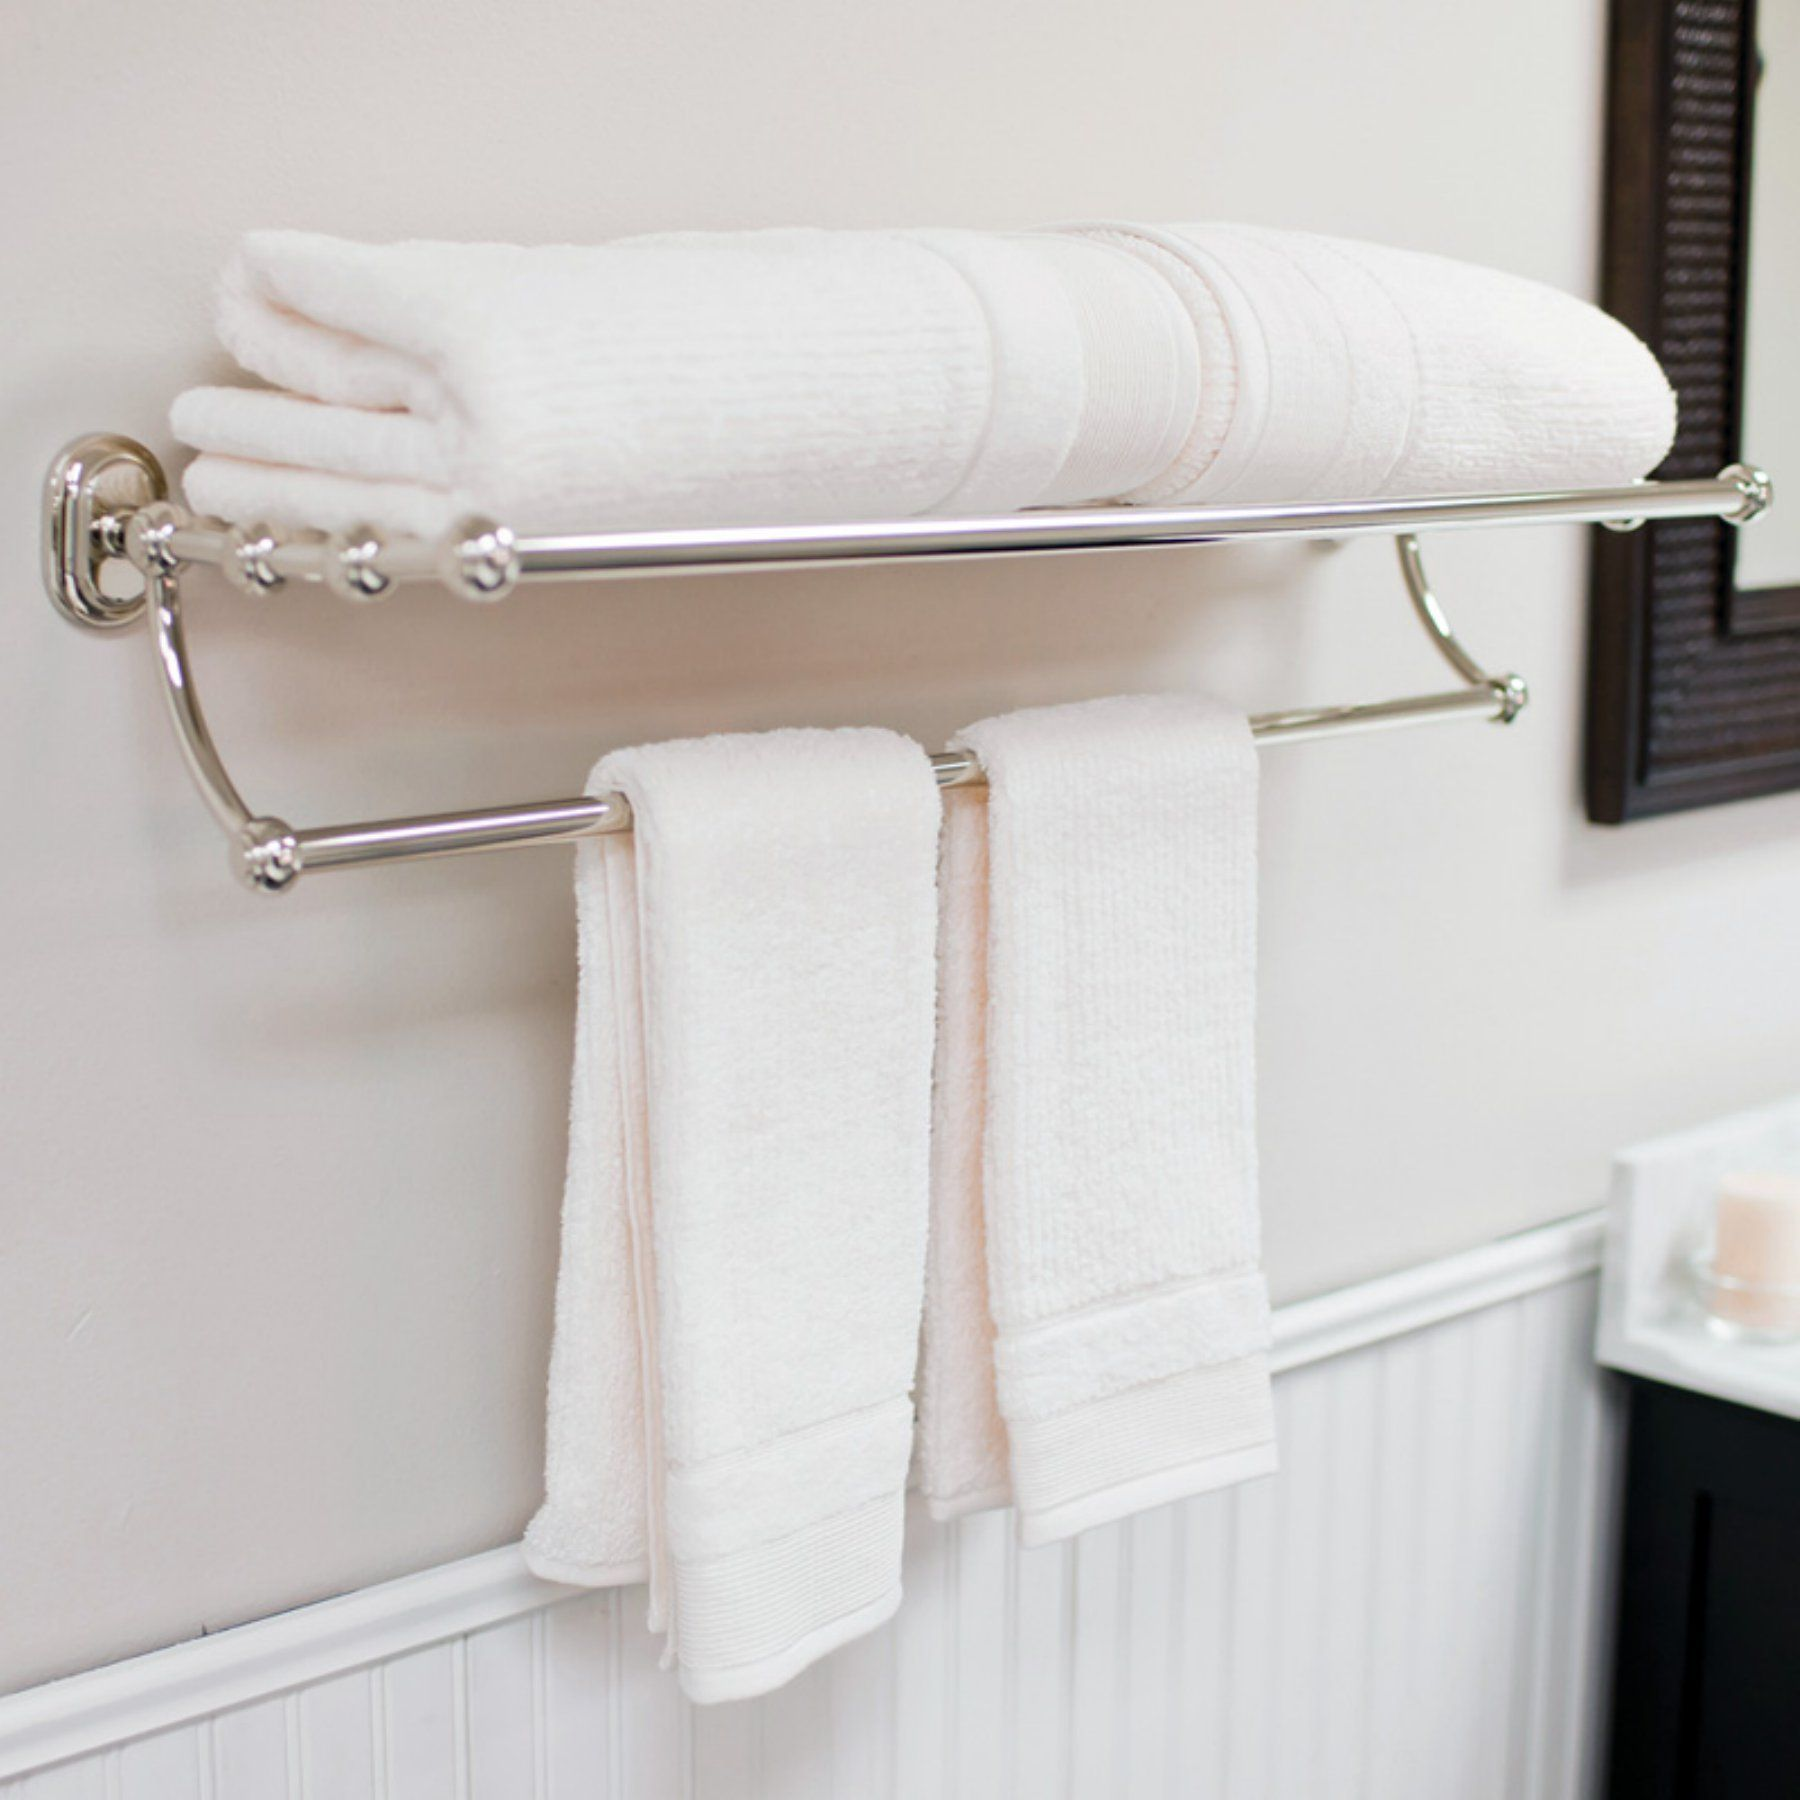 Water Creation Vintage Classic Bath Towel Rack - BA-0001-01 | Bath ...